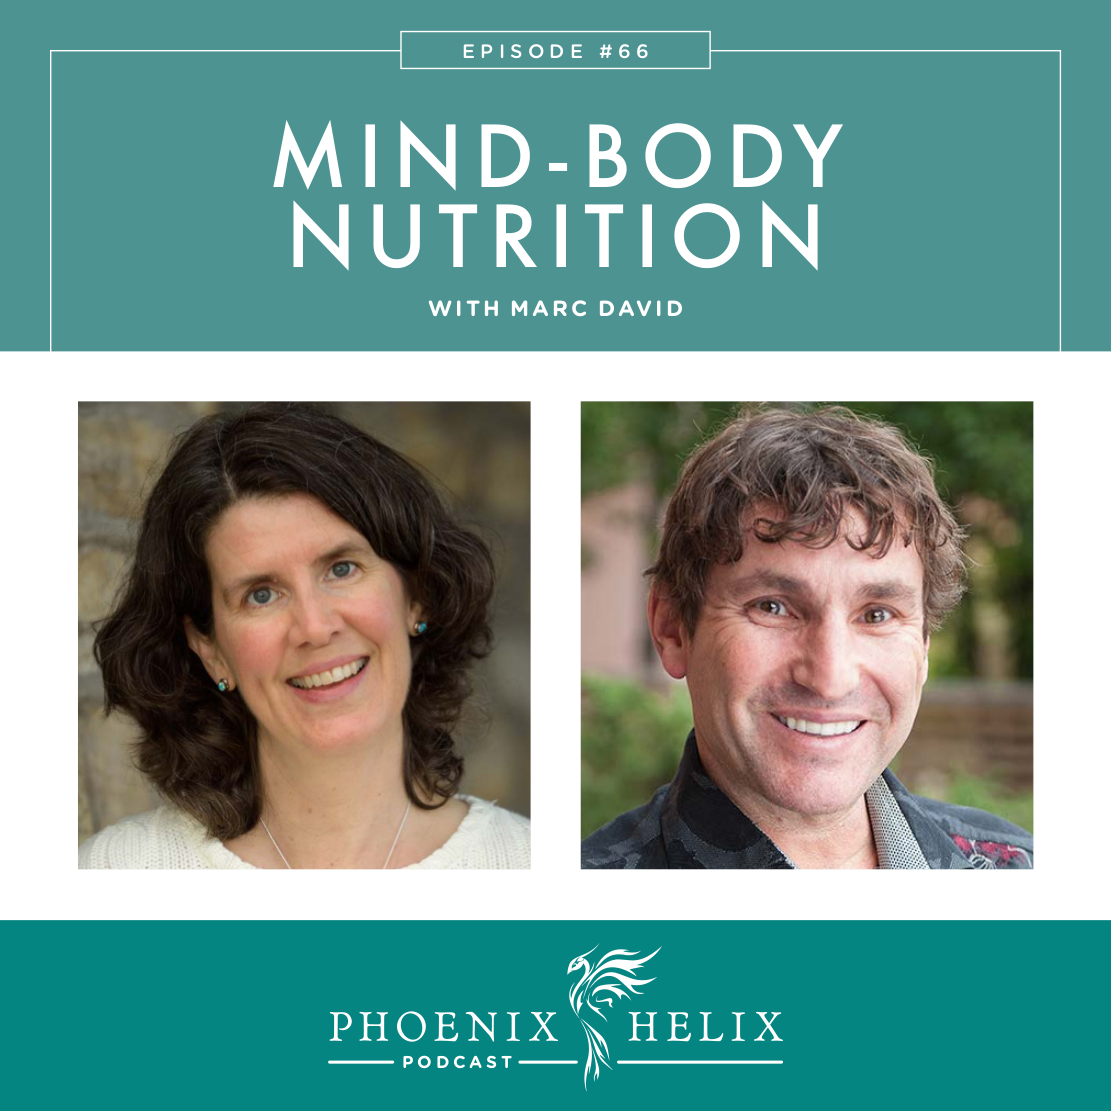 Best of the Phoenix Helix Podcast: Mind-Body Nutrition with Marc David